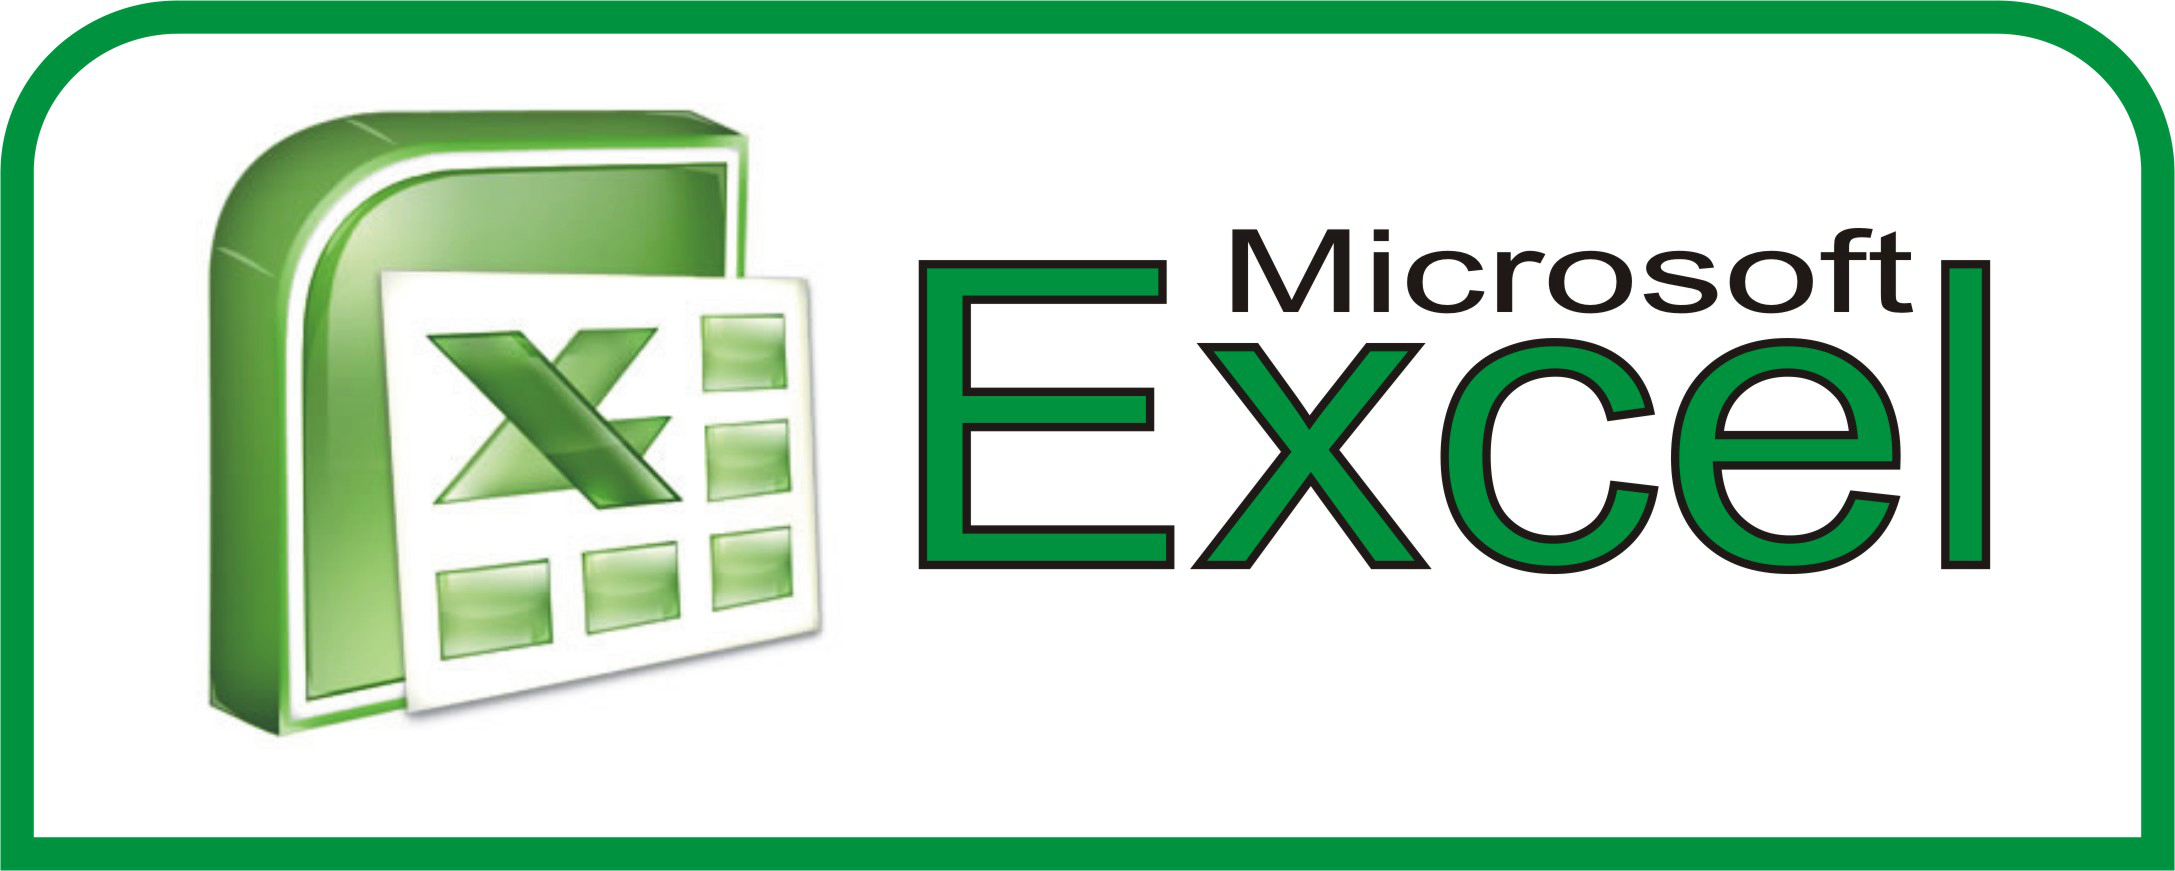 Ediblewildsus  Fascinating  Excel Shortcuts You Probably Didnt Know About  Techdissected With Interesting How To Combine Excel Columns Besides How To Group Rows In Excel  Furthermore Fishbone Diagram In Excel With Cool Pdf To Excel Converter Freeware Also Create Map From Excel In Addition Convert Excel To Database And Excel Application Object As Well As Excel For Free Online Additionally Microsoft Office Excel Cannot Access The File From Techdissectedcom With Ediblewildsus  Interesting  Excel Shortcuts You Probably Didnt Know About  Techdissected With Cool How To Combine Excel Columns Besides How To Group Rows In Excel  Furthermore Fishbone Diagram In Excel And Fascinating Pdf To Excel Converter Freeware Also Create Map From Excel In Addition Convert Excel To Database From Techdissectedcom